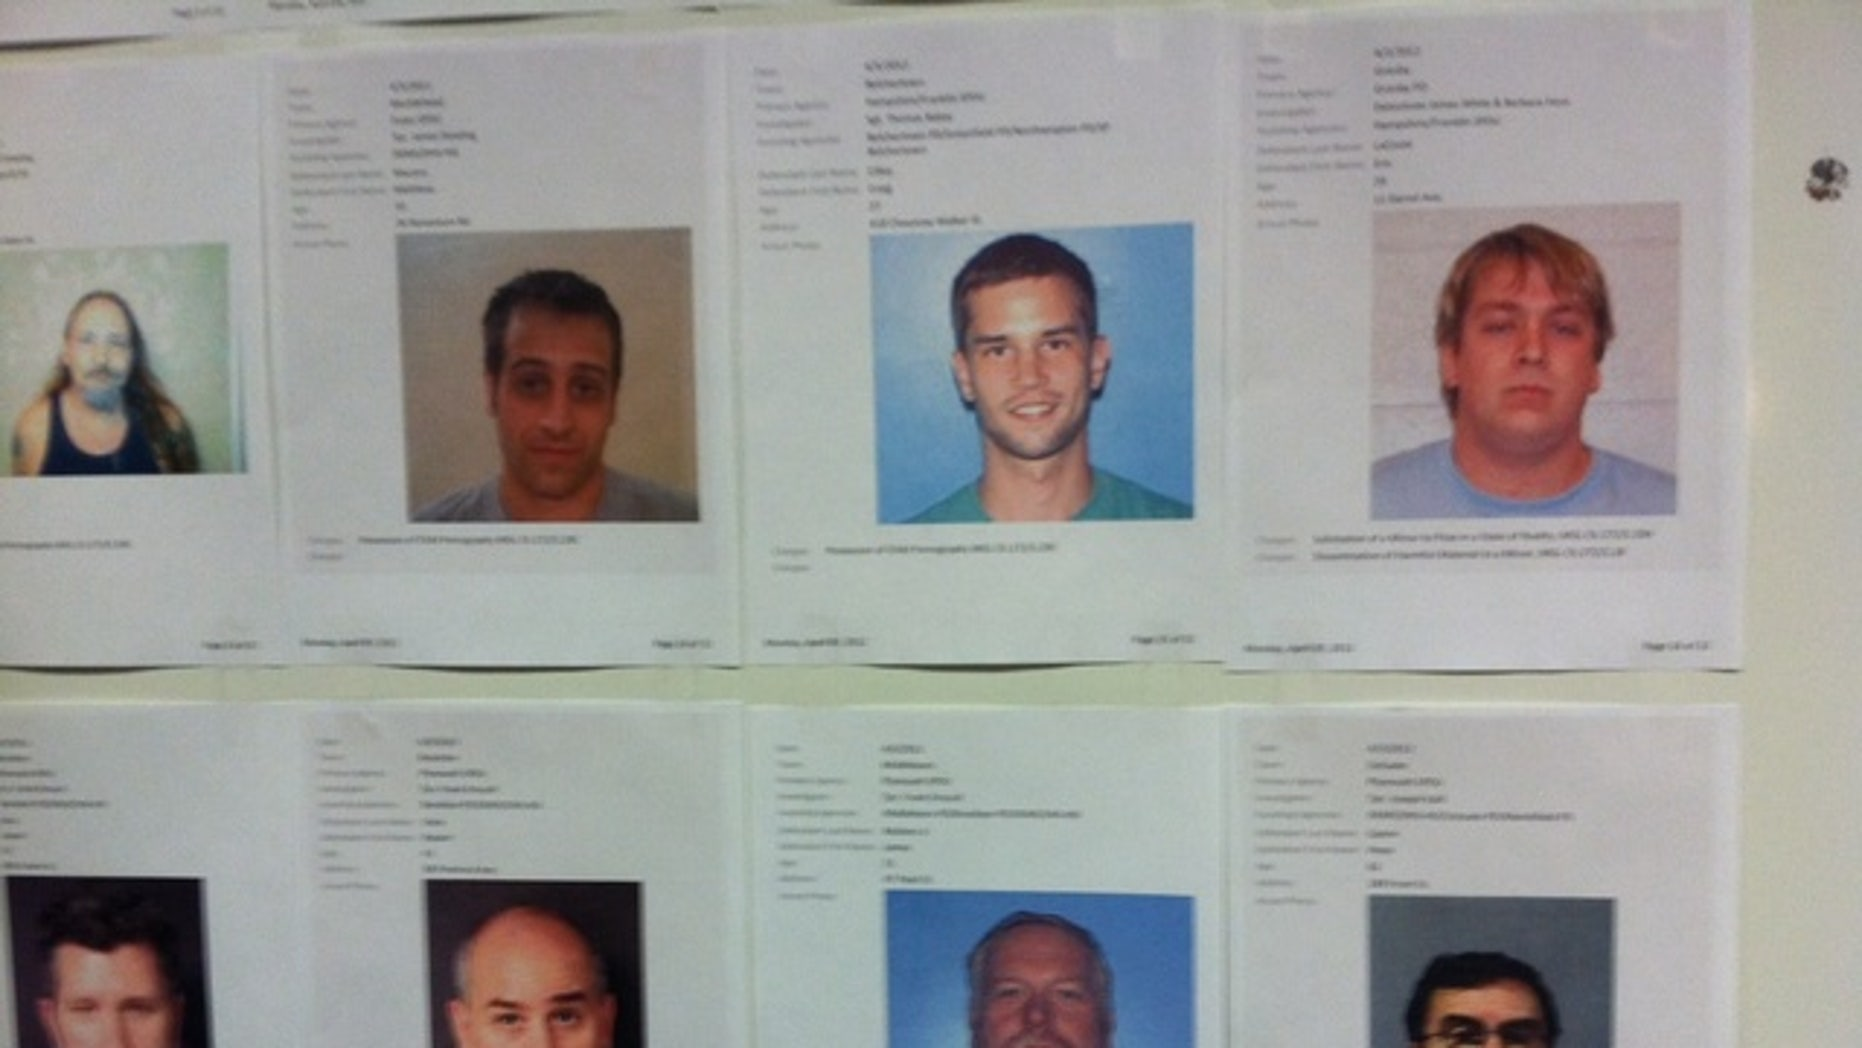 April 10, 2012: Mugshots of those arrested were posted on the walls of Massachusetts State Police Headquarters in Framingham.